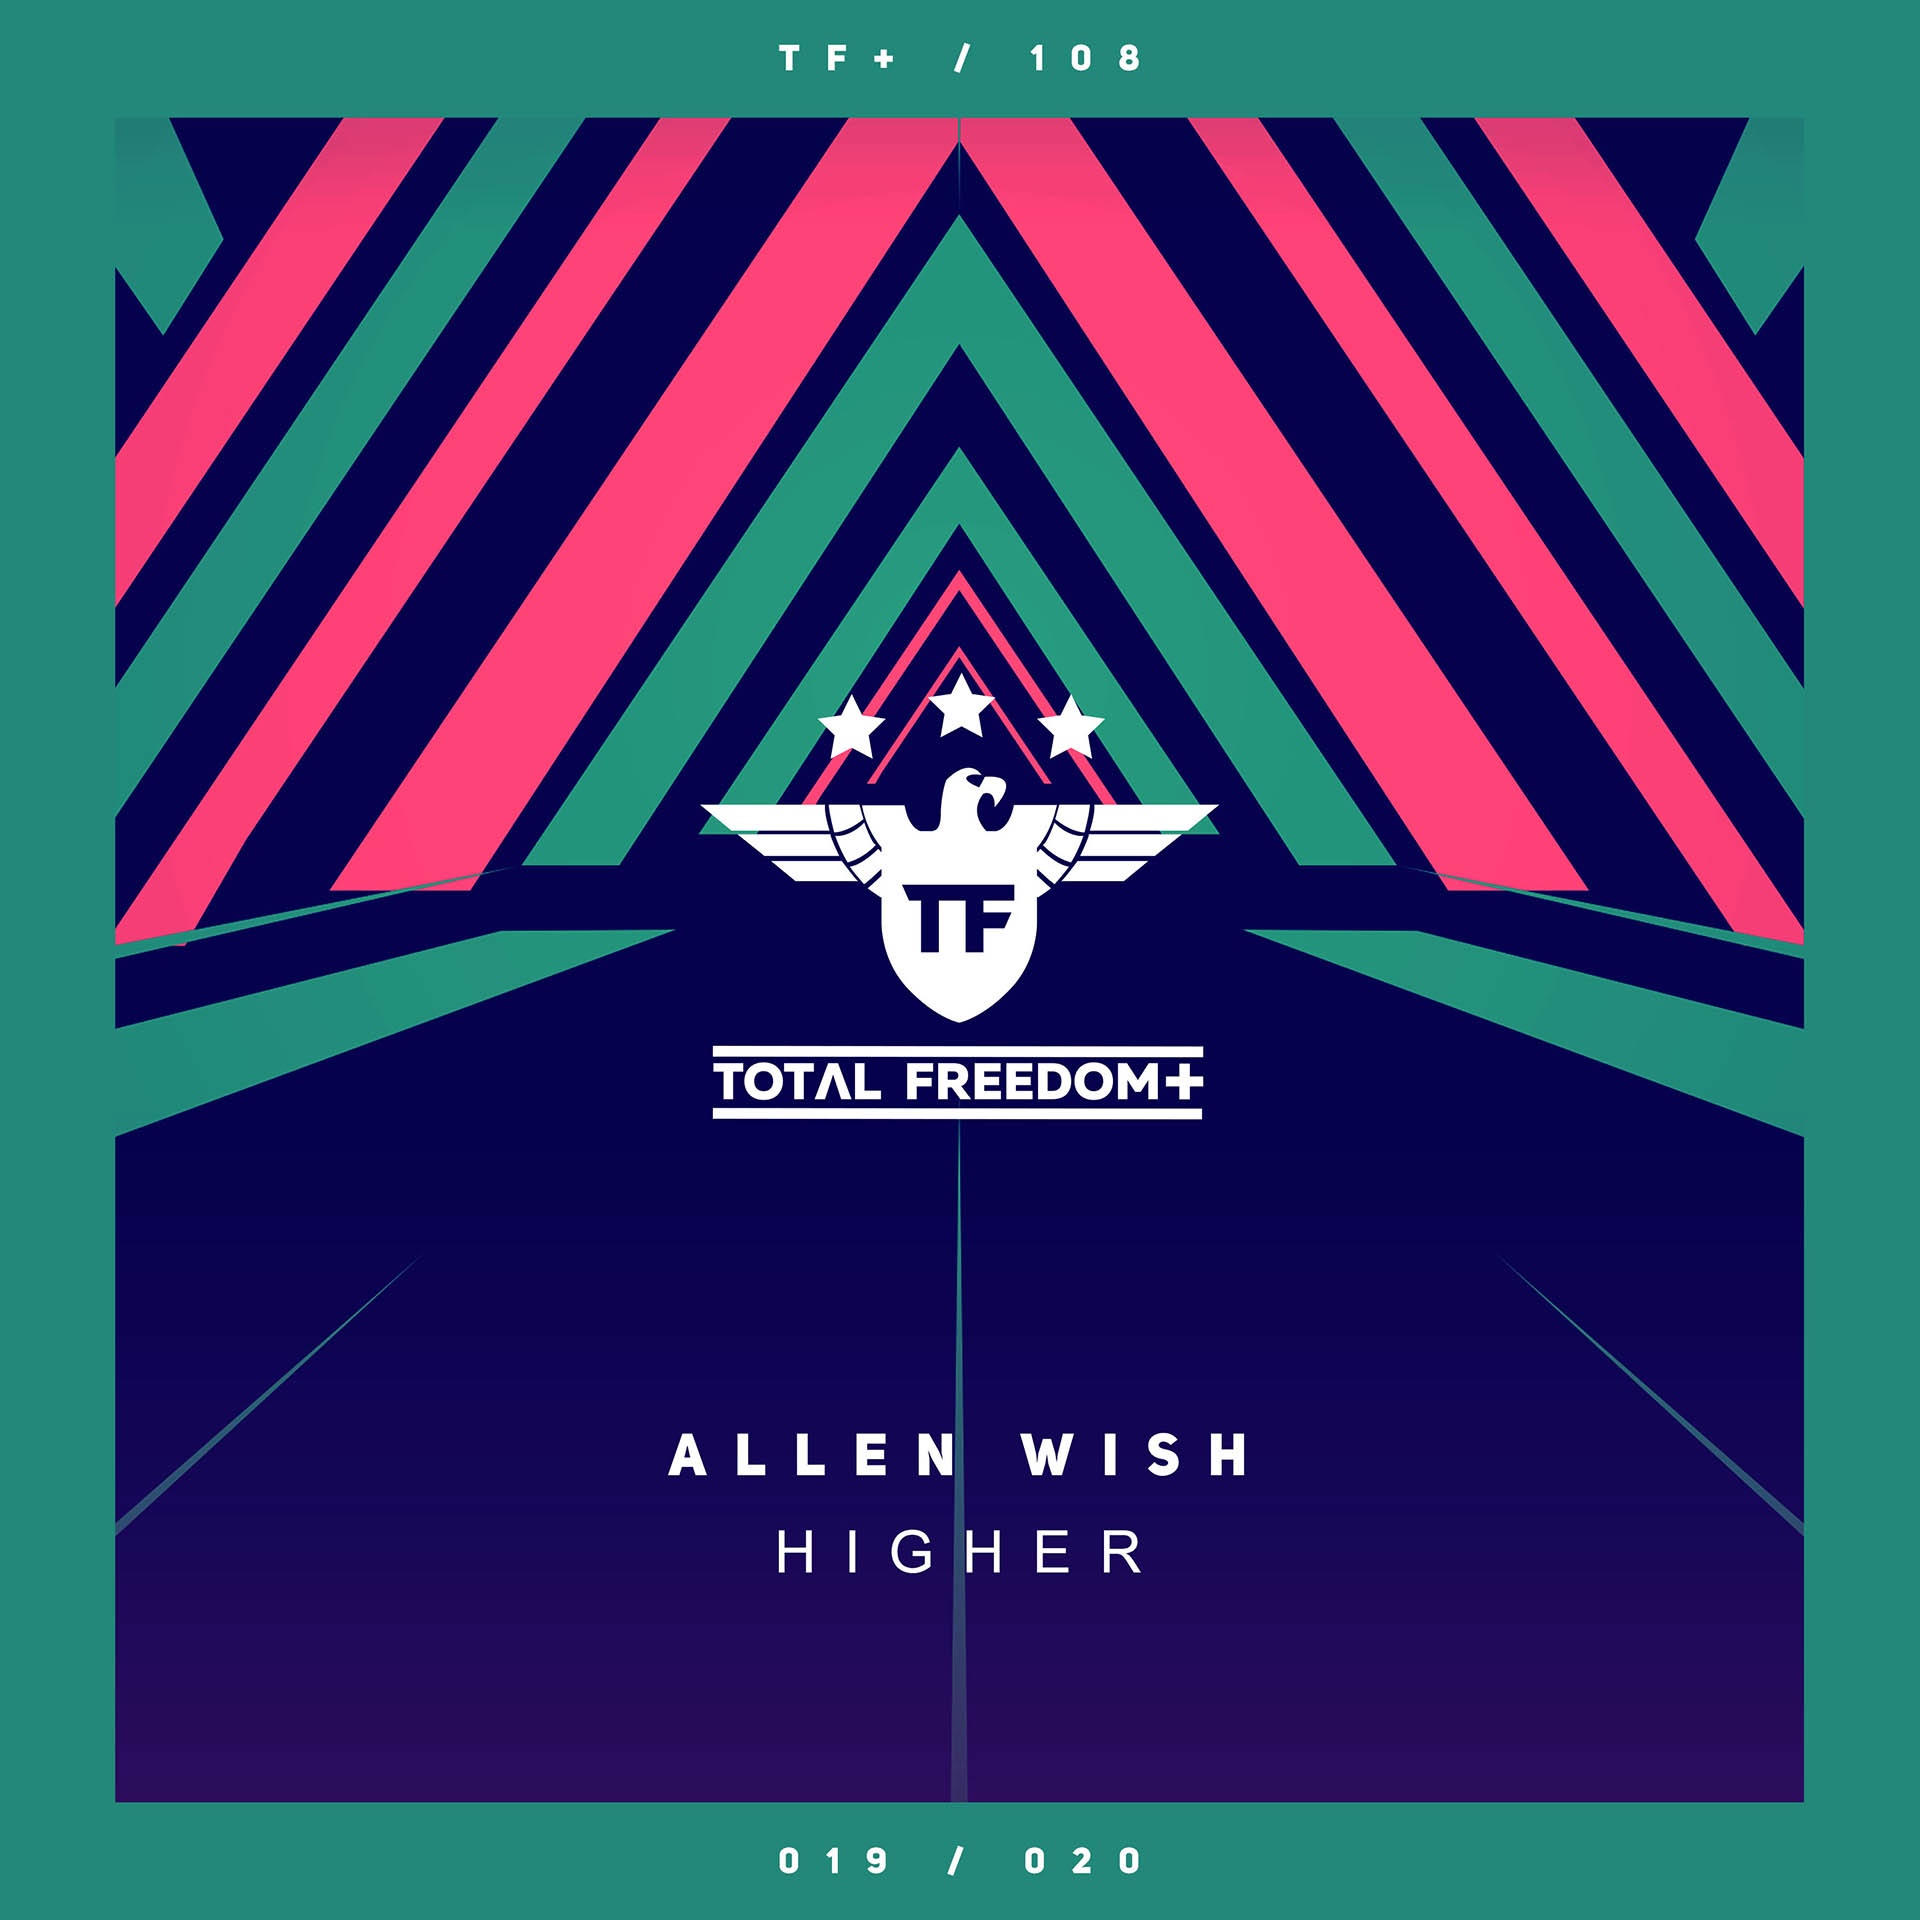 Allen Wish - Higher